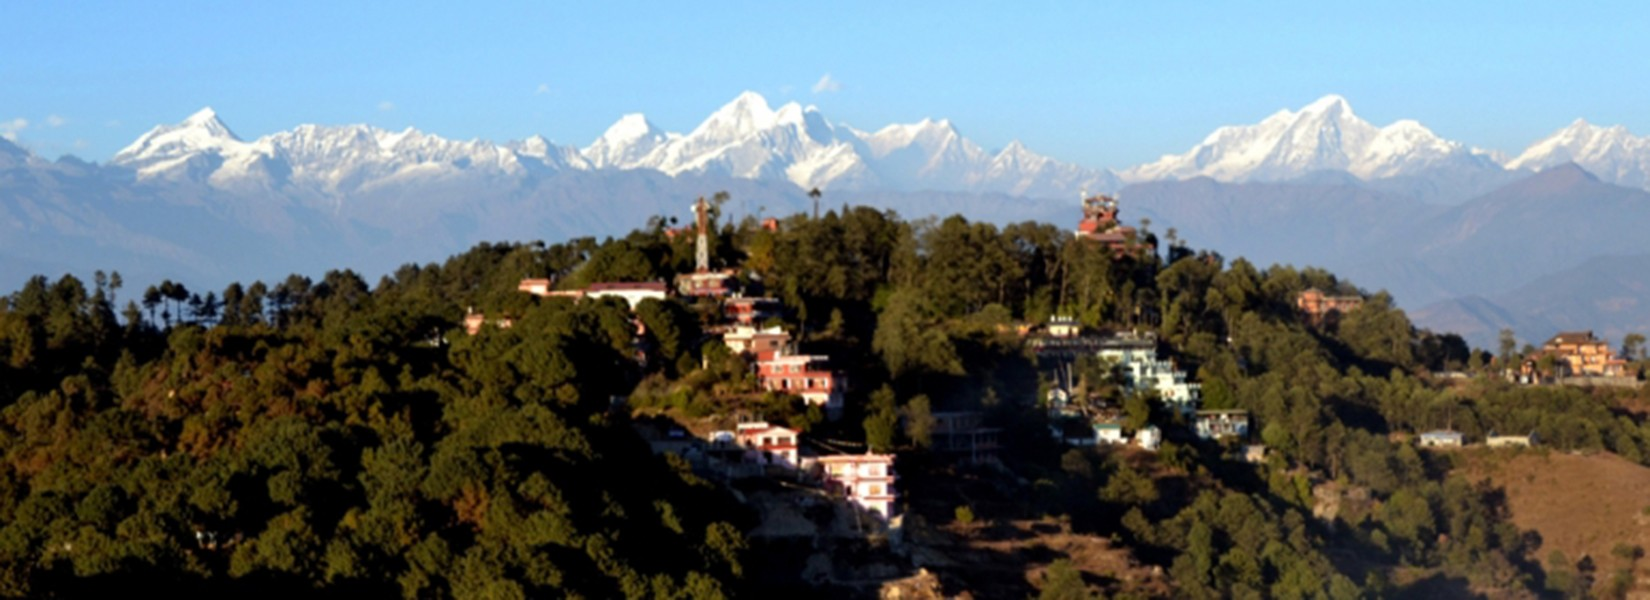 Nepal Holy Moon Tour Banner Image